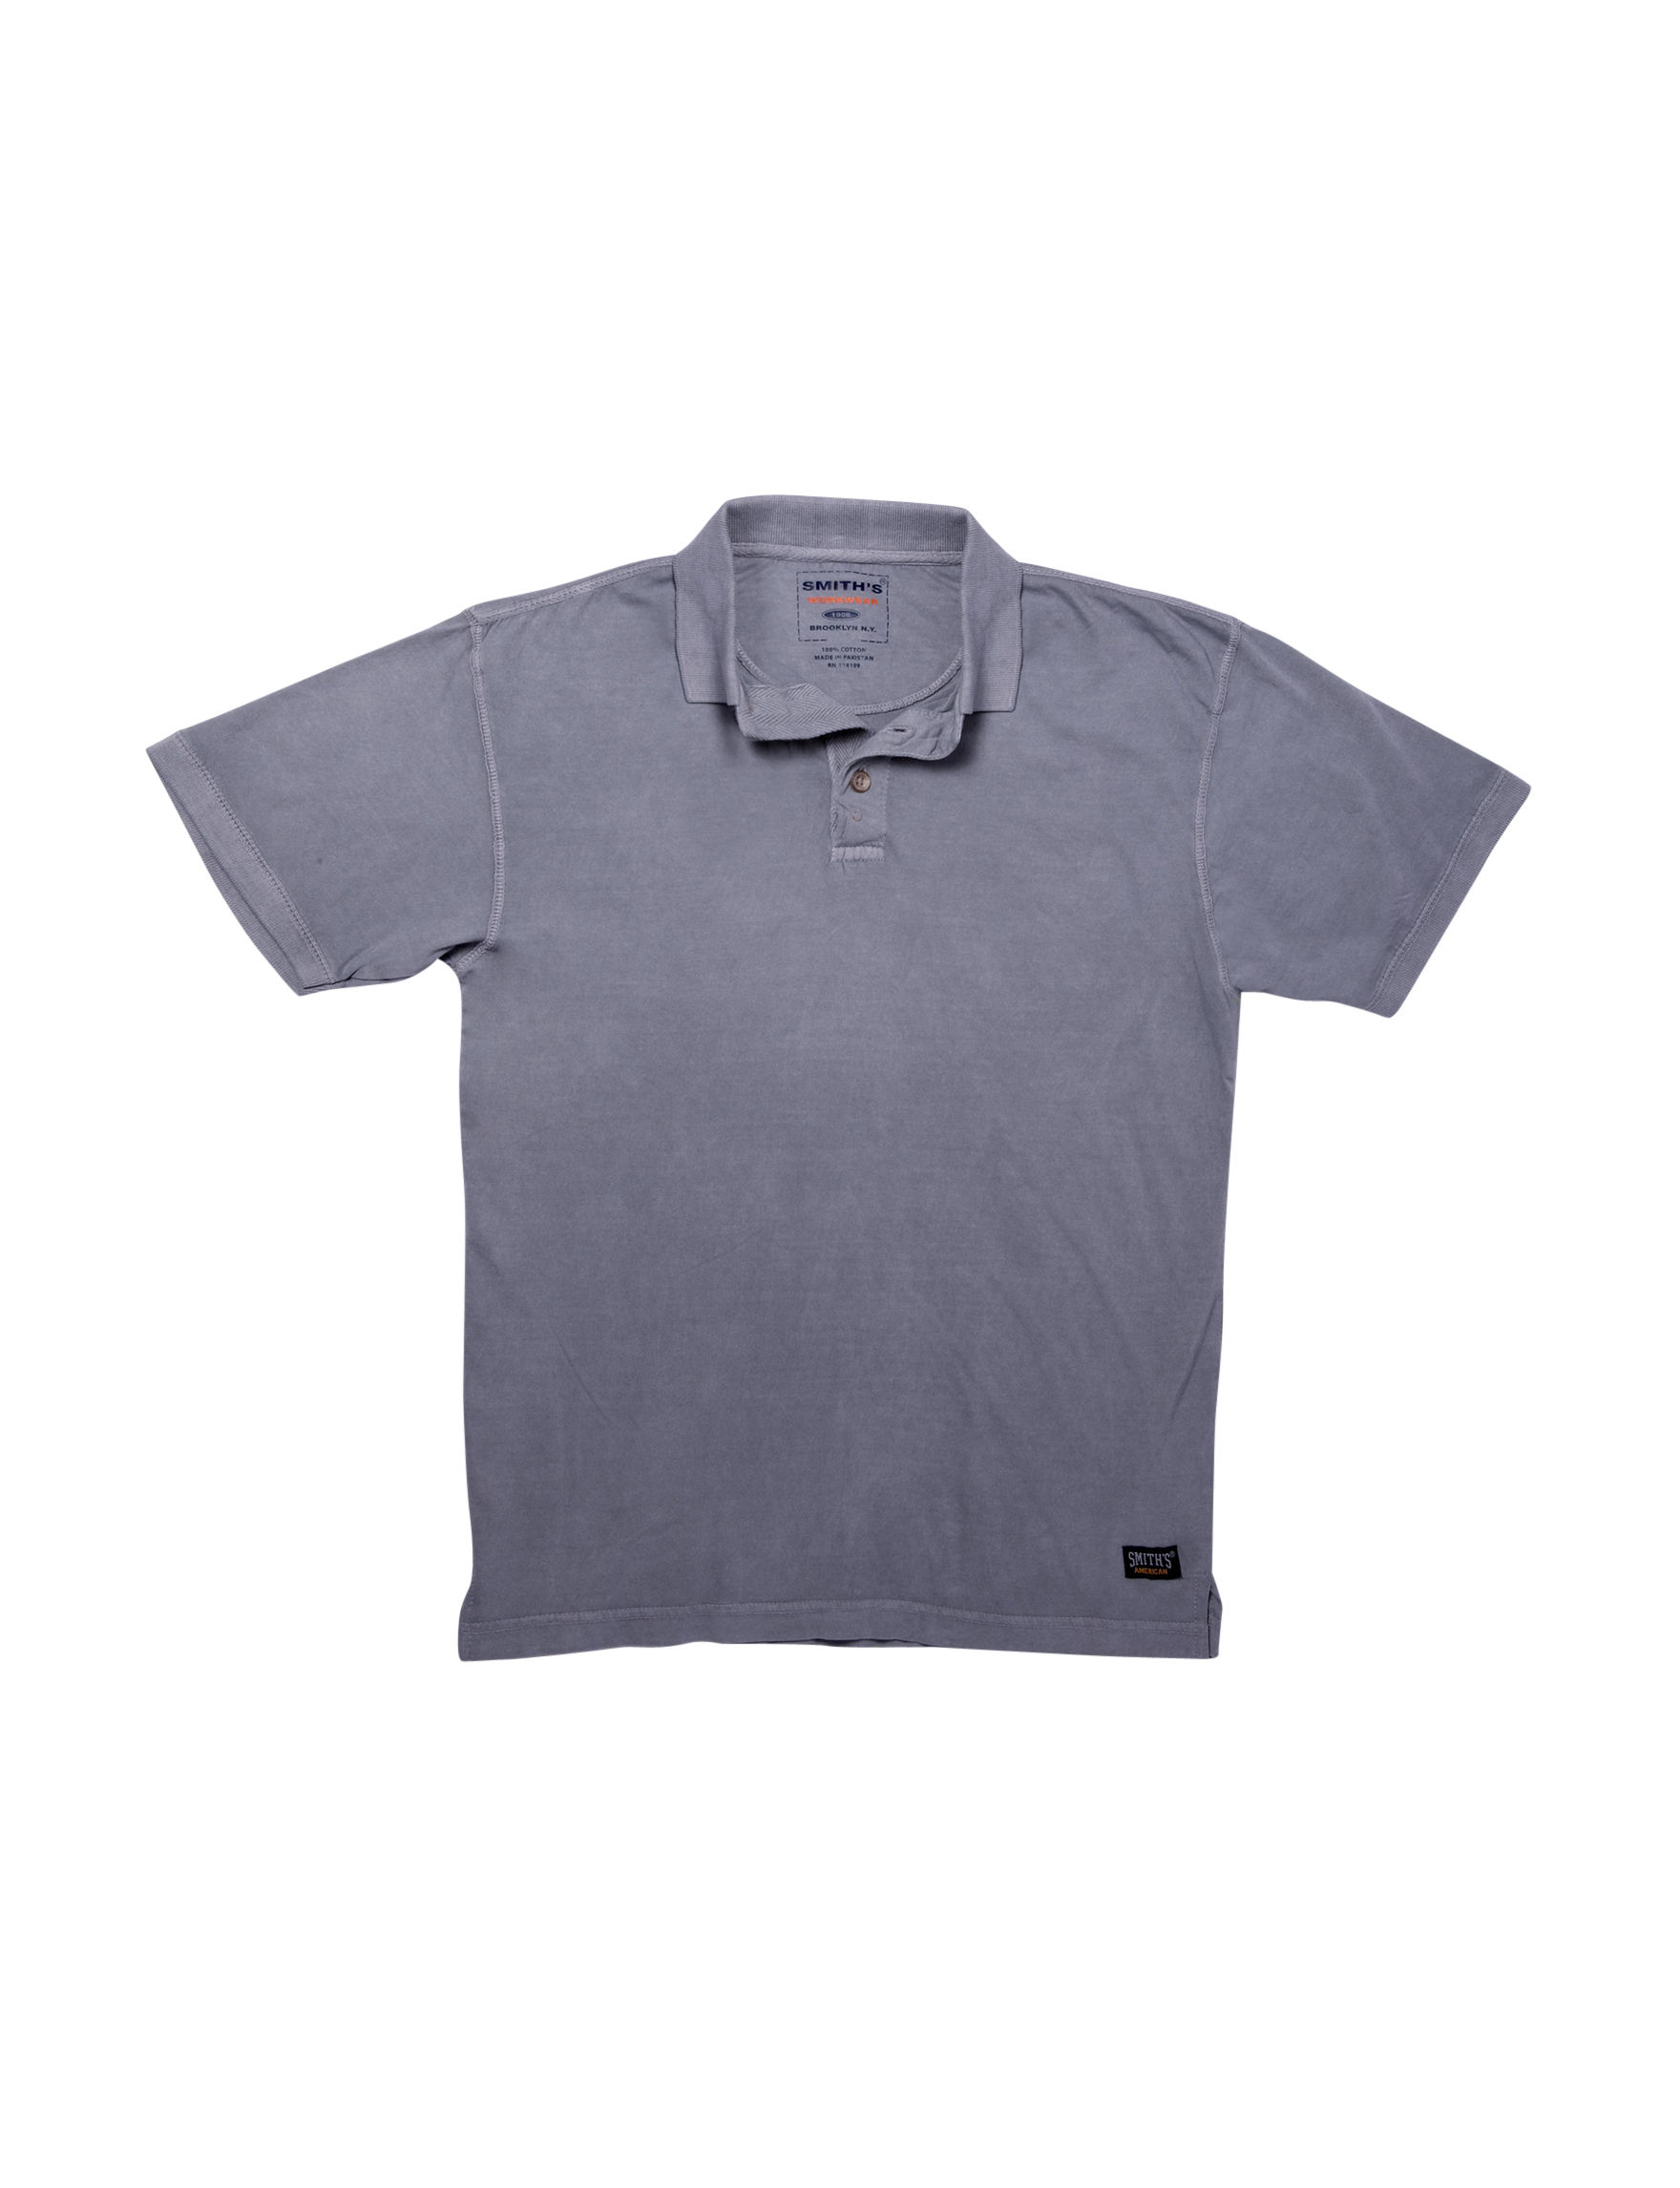 Smith's Workwear Grey Polos